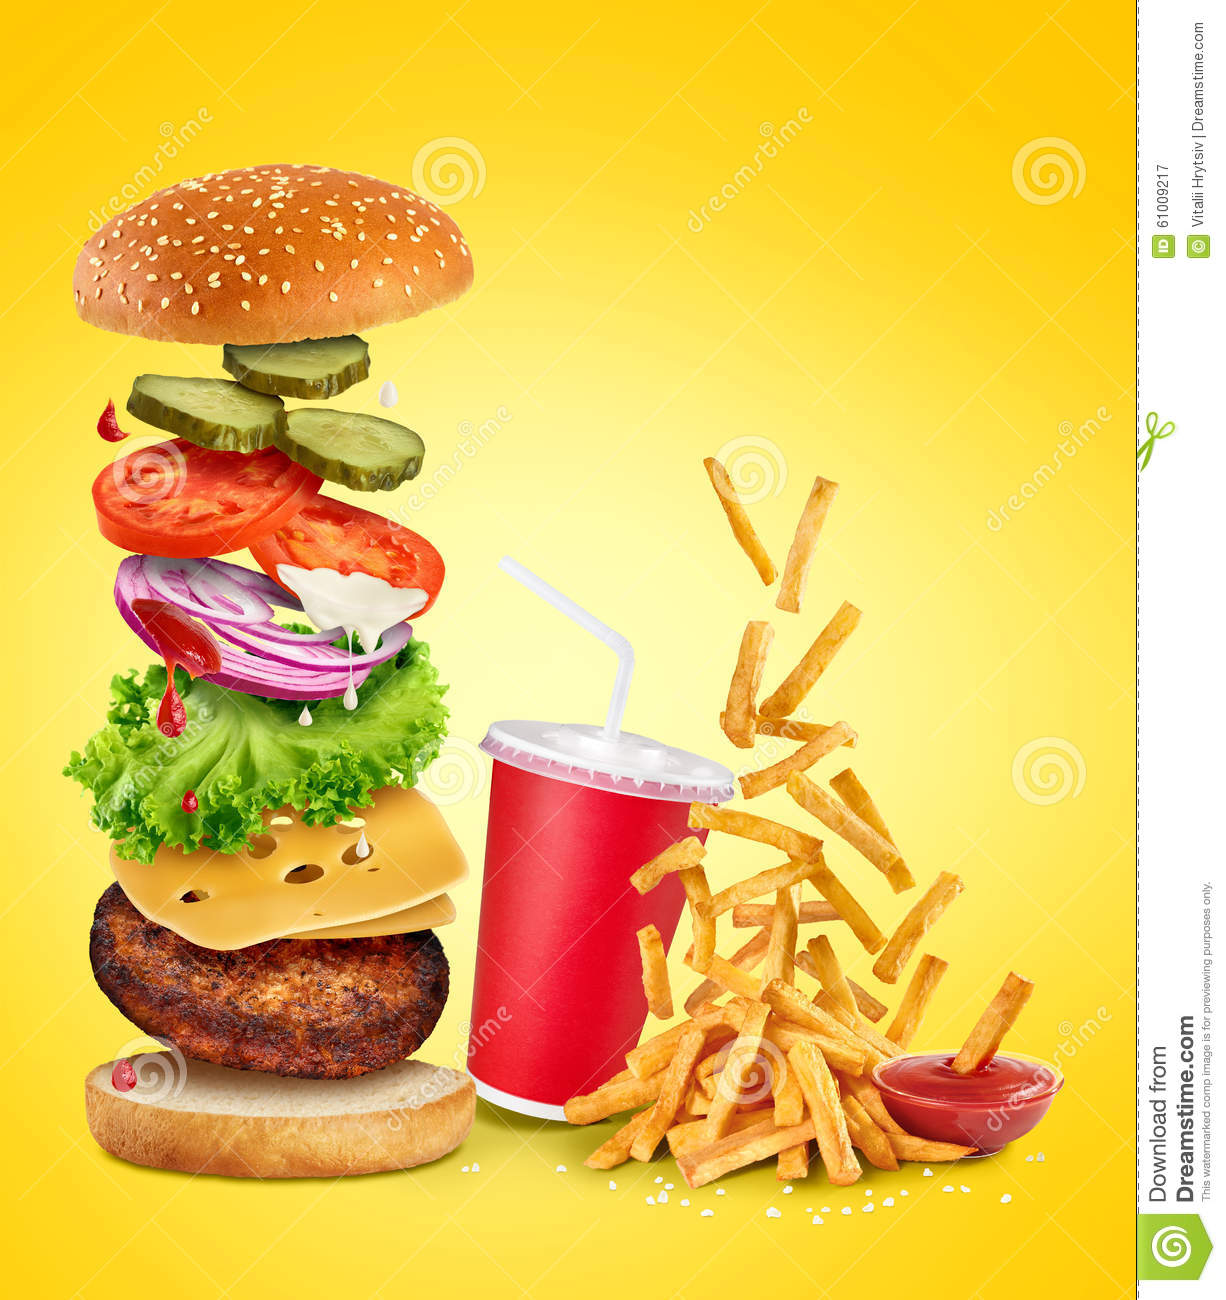 Fast food images high resolution